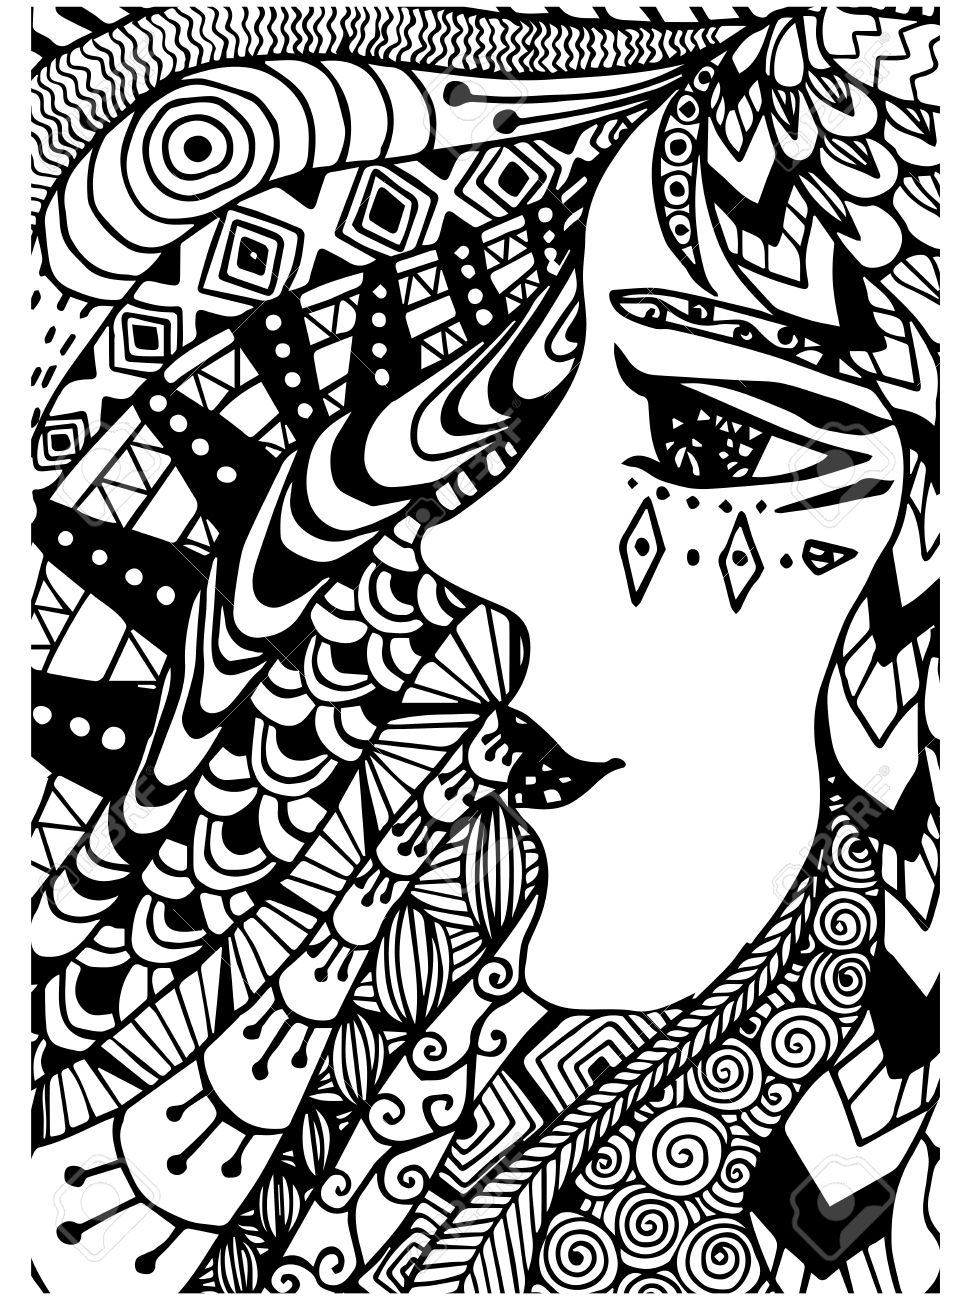 Pattern For Coloring Book Ethnicwoman Retro Doodle Tribal Design Element